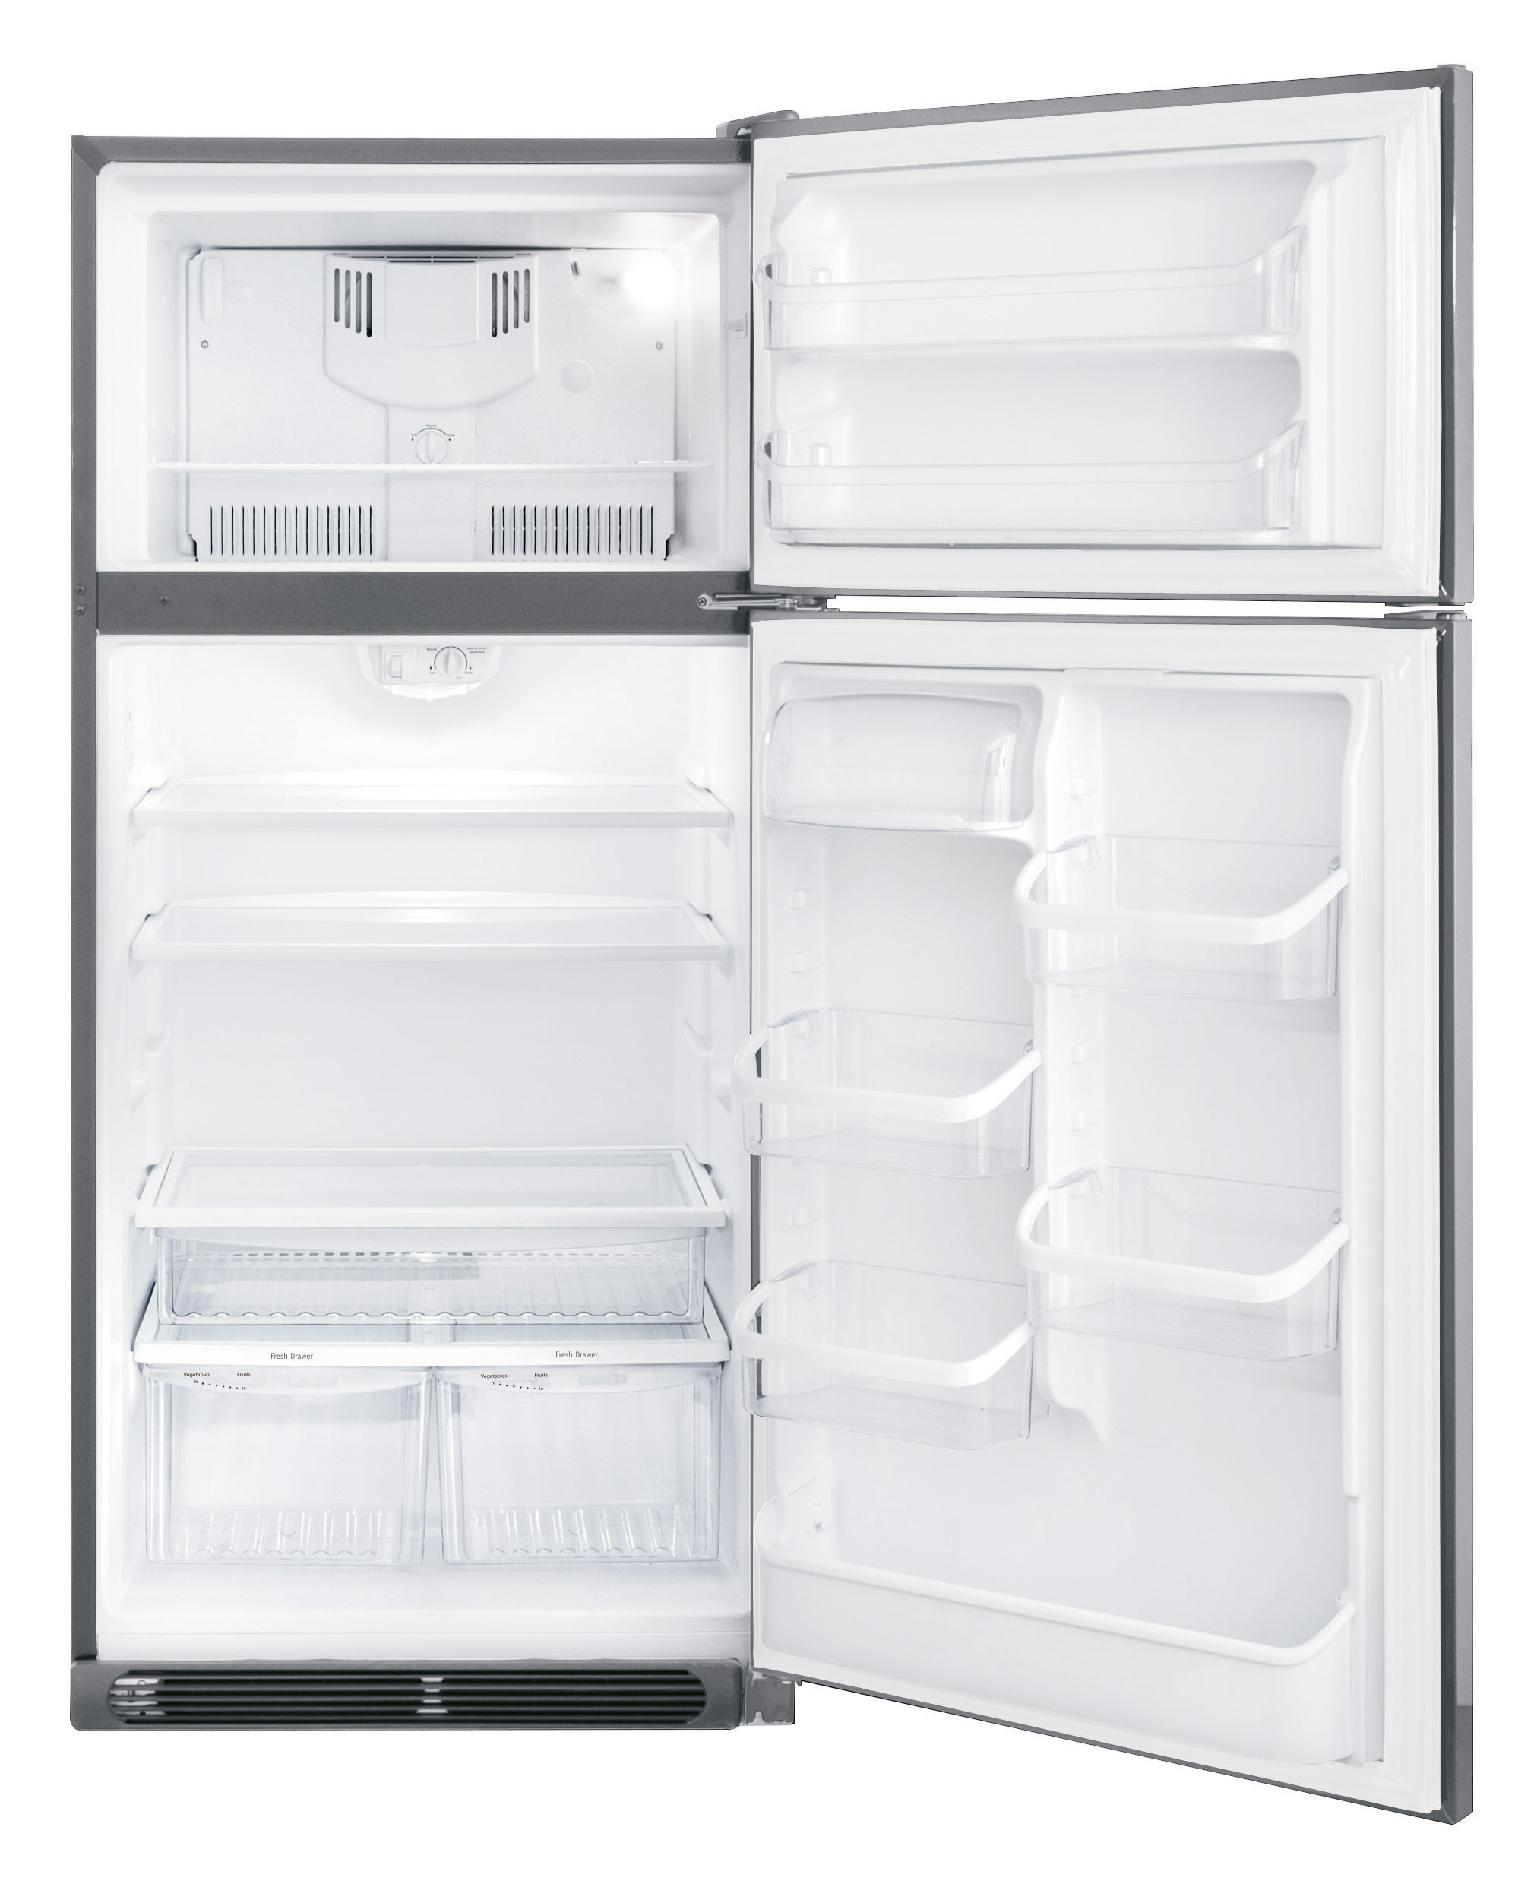 Frigidaire Gallery Gallery 18.3 cu. ft. Top-Freezer Refrigerator - Stainless Steel